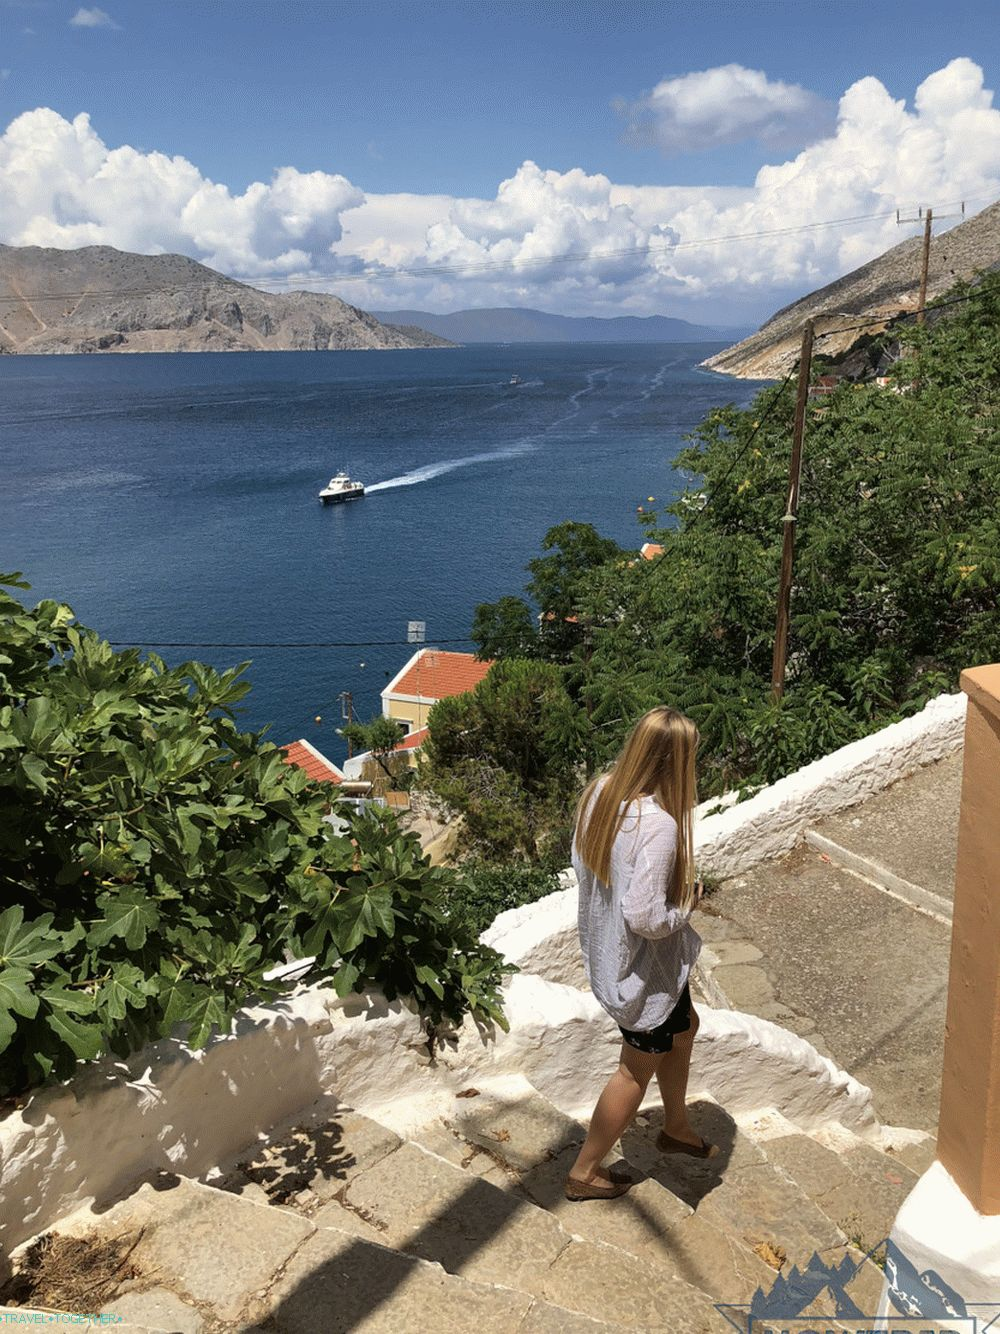 Excursion to the island of Symi